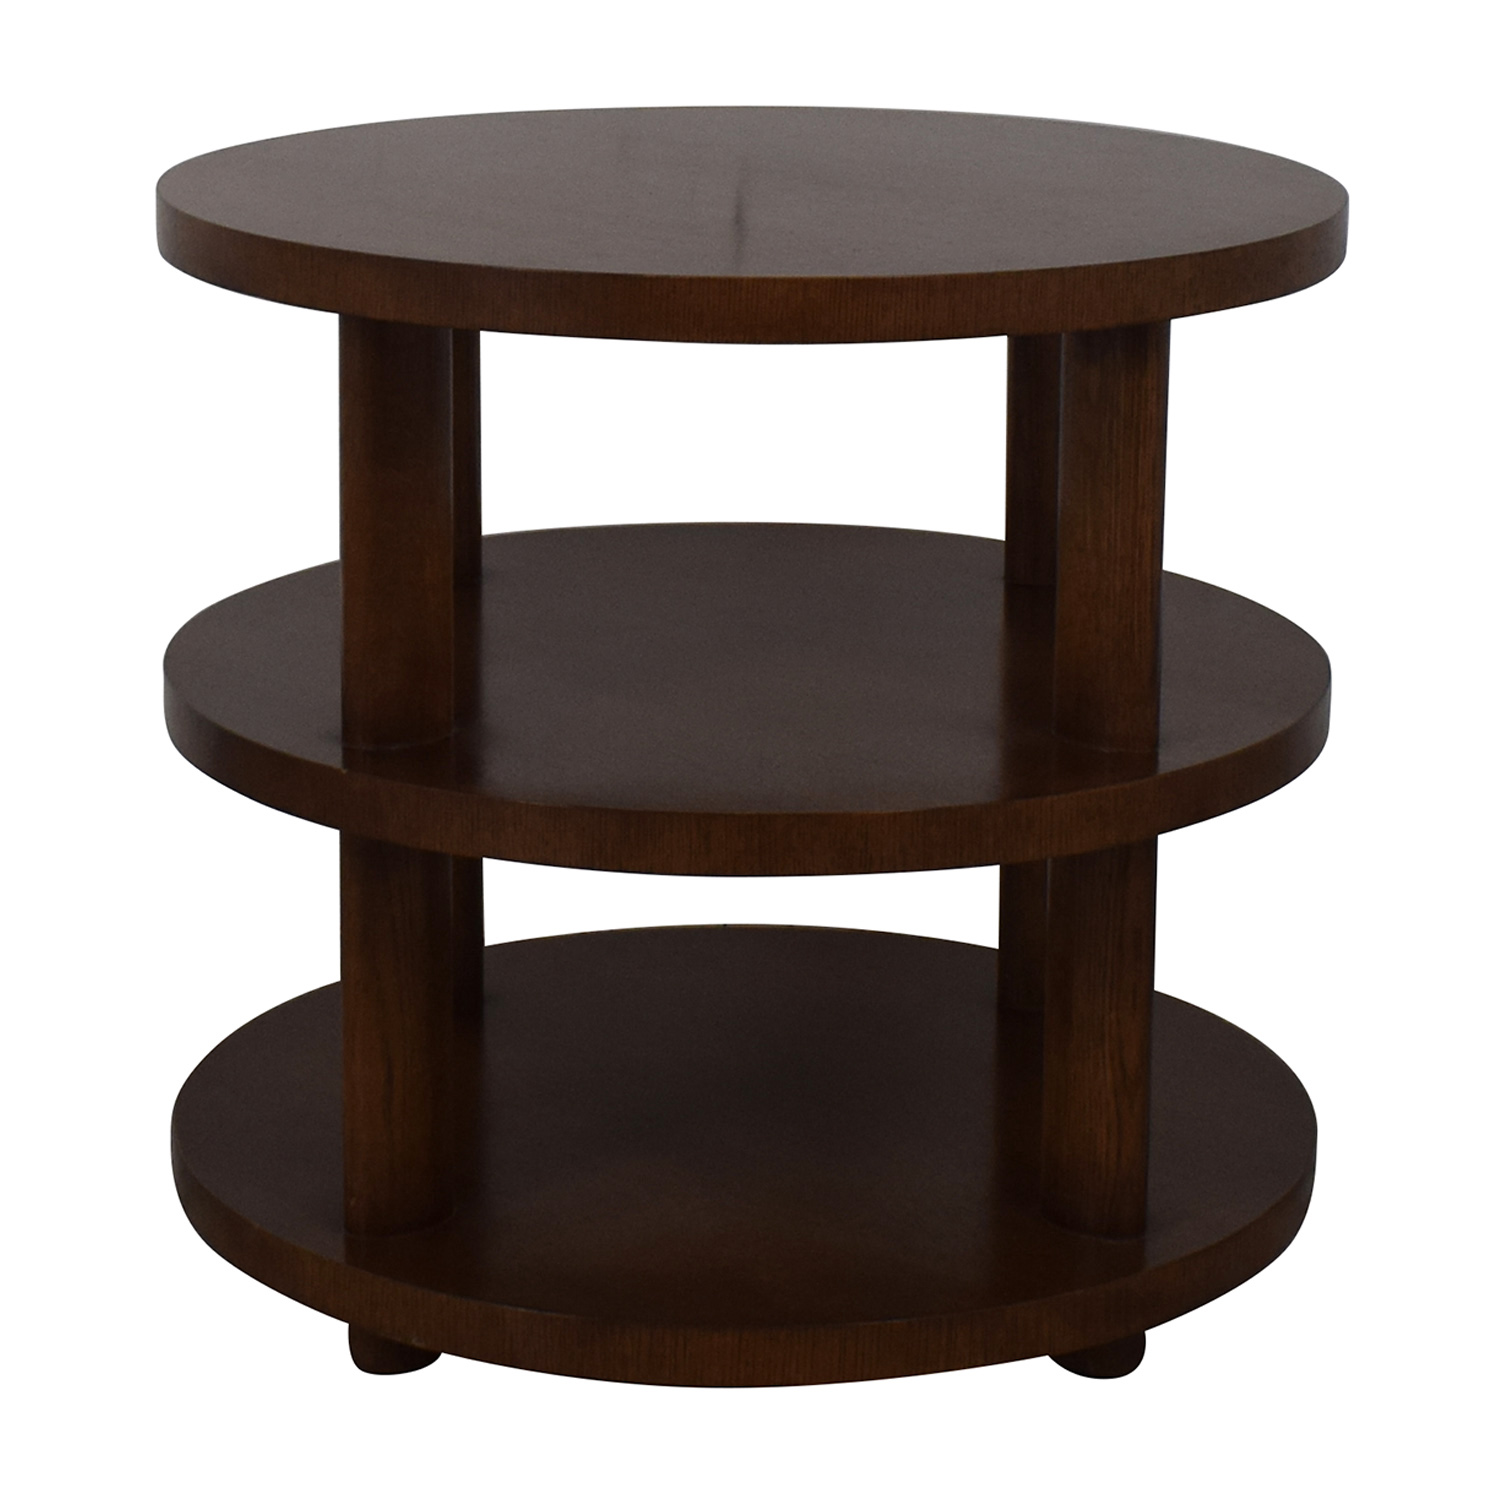 Baker Furniture Barbara Barry Round Tiered Occasional Table / End Tables